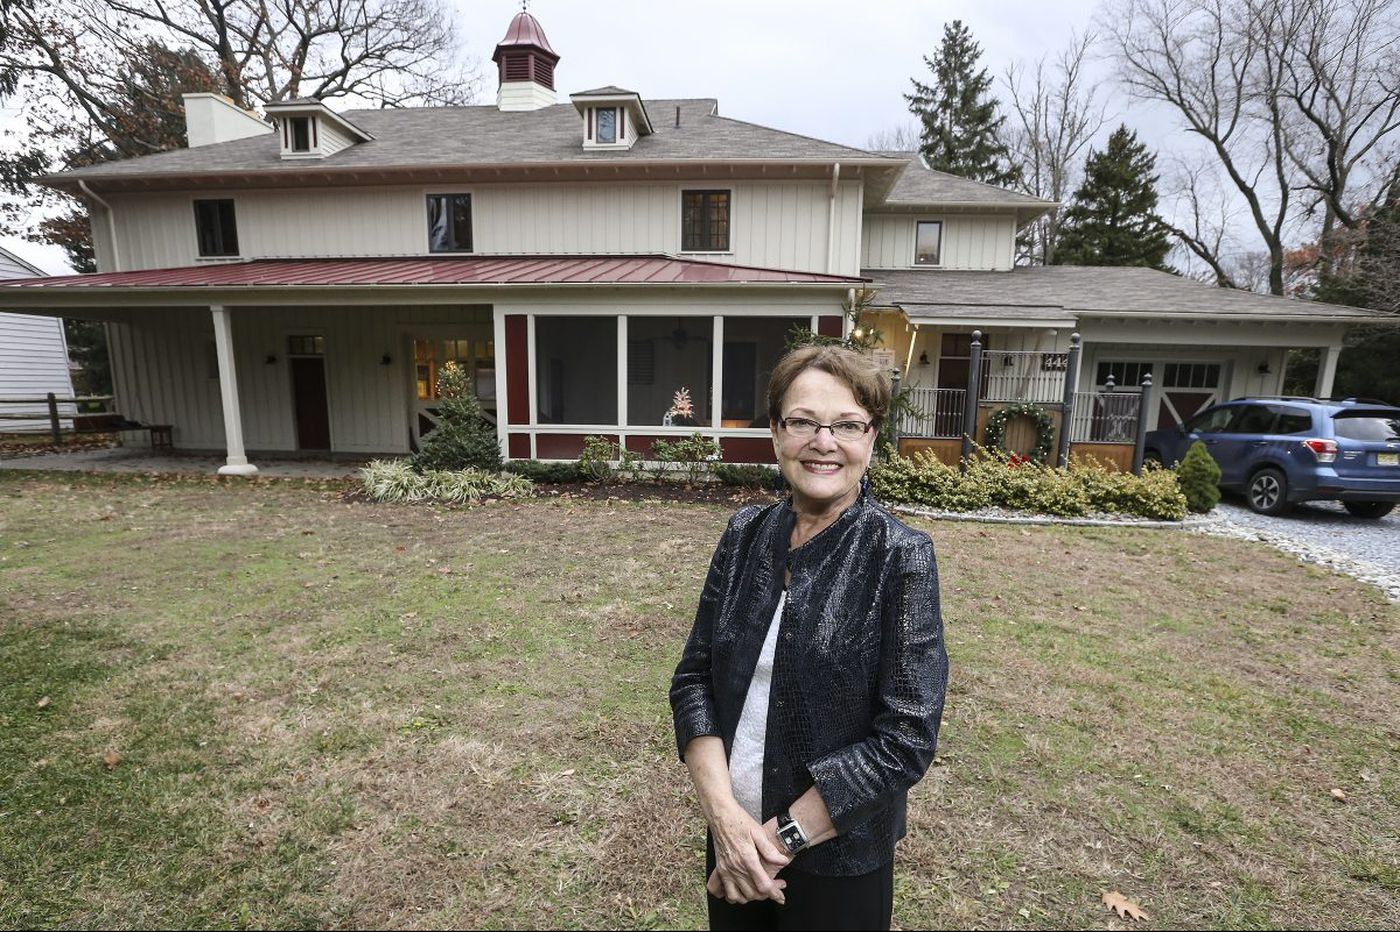 Former Strawbridge stable transformed into cozy Moorestown home